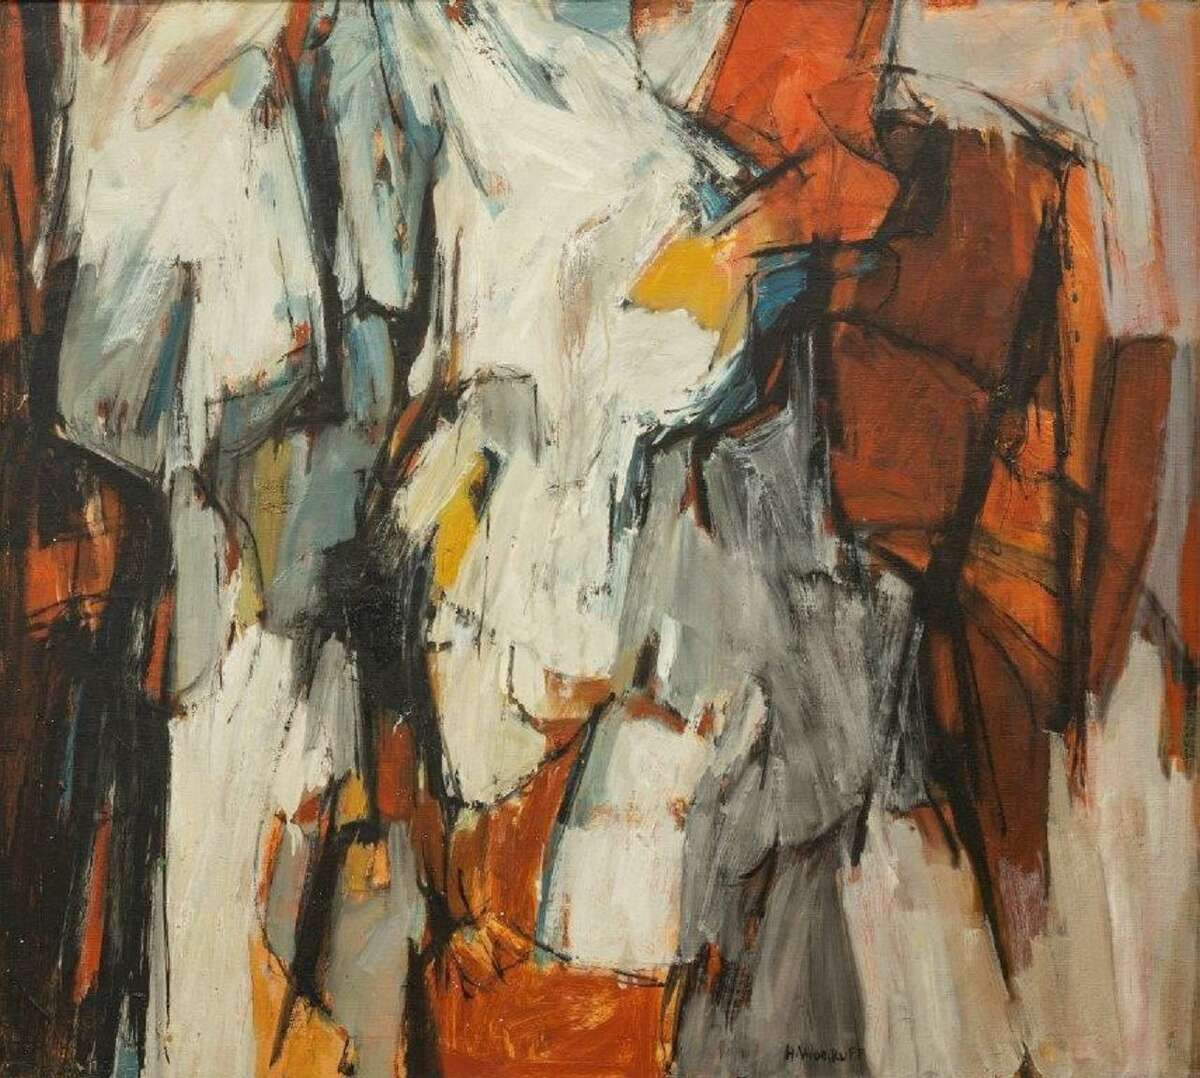 Hale Woodruff's Two Figures Abstraction, 1958. Oil on canvas.